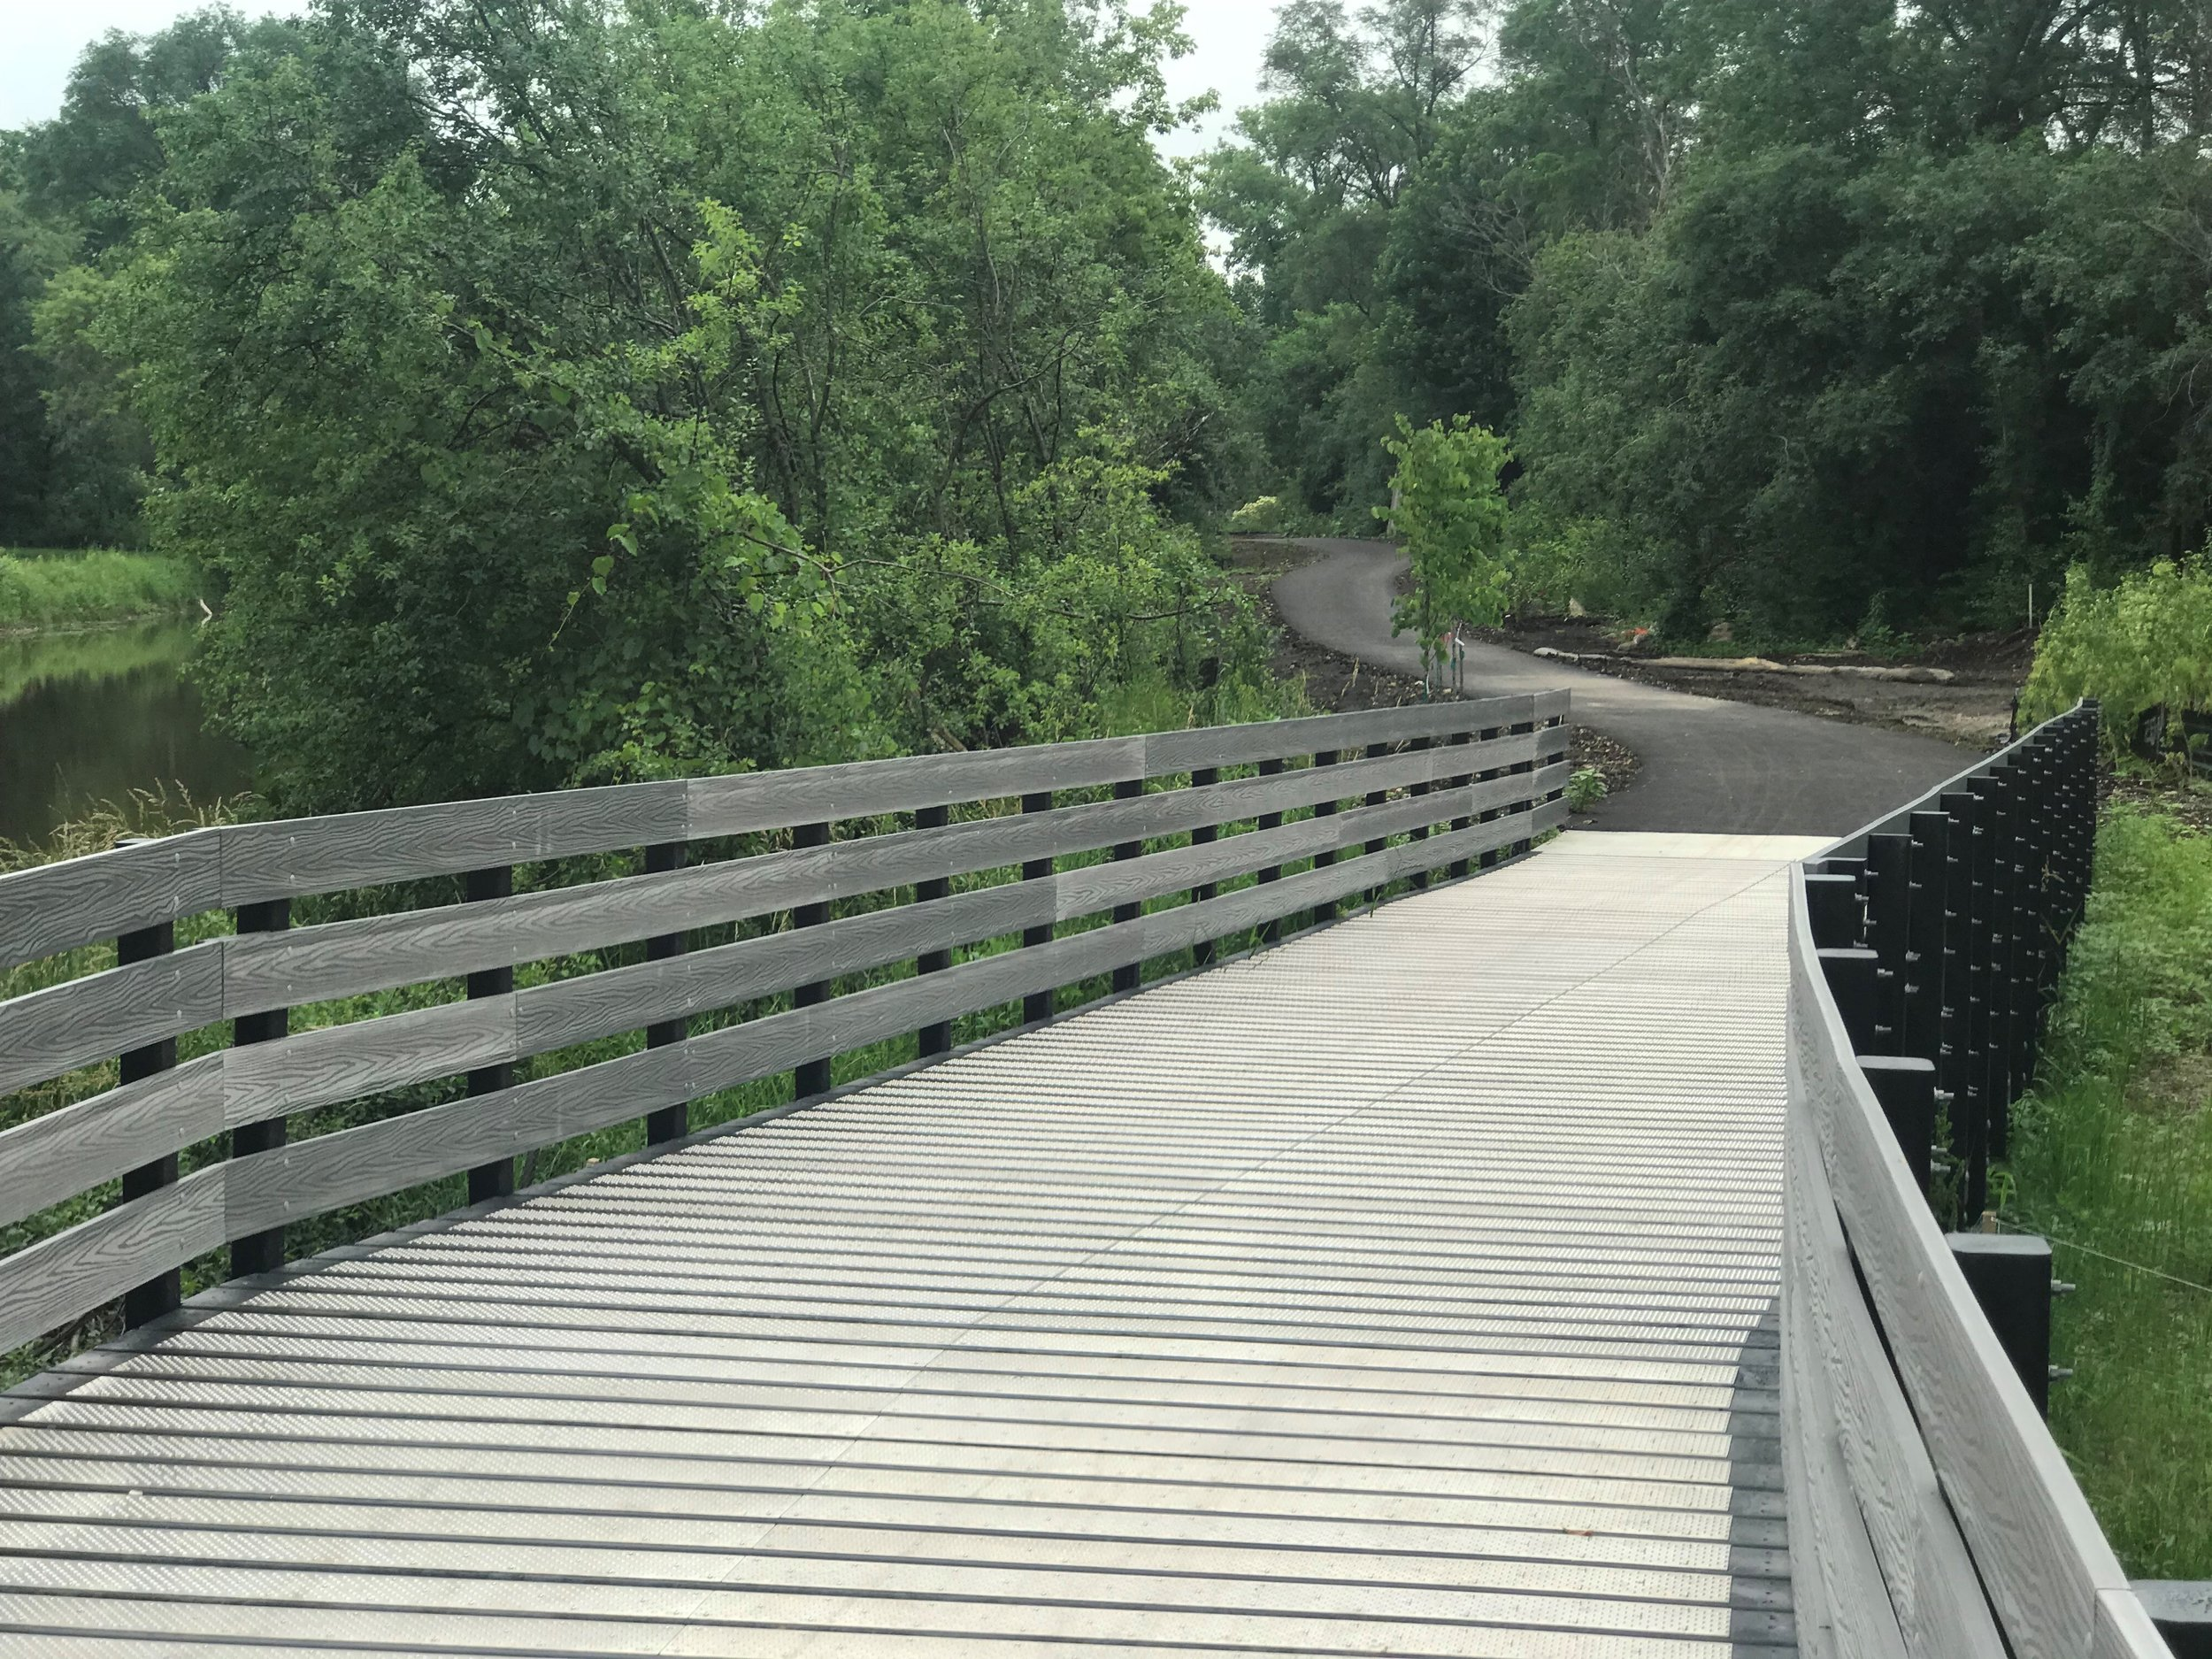 Looking north from a boardwalk bridge on the new section of West Branch of The DuPage River Trail